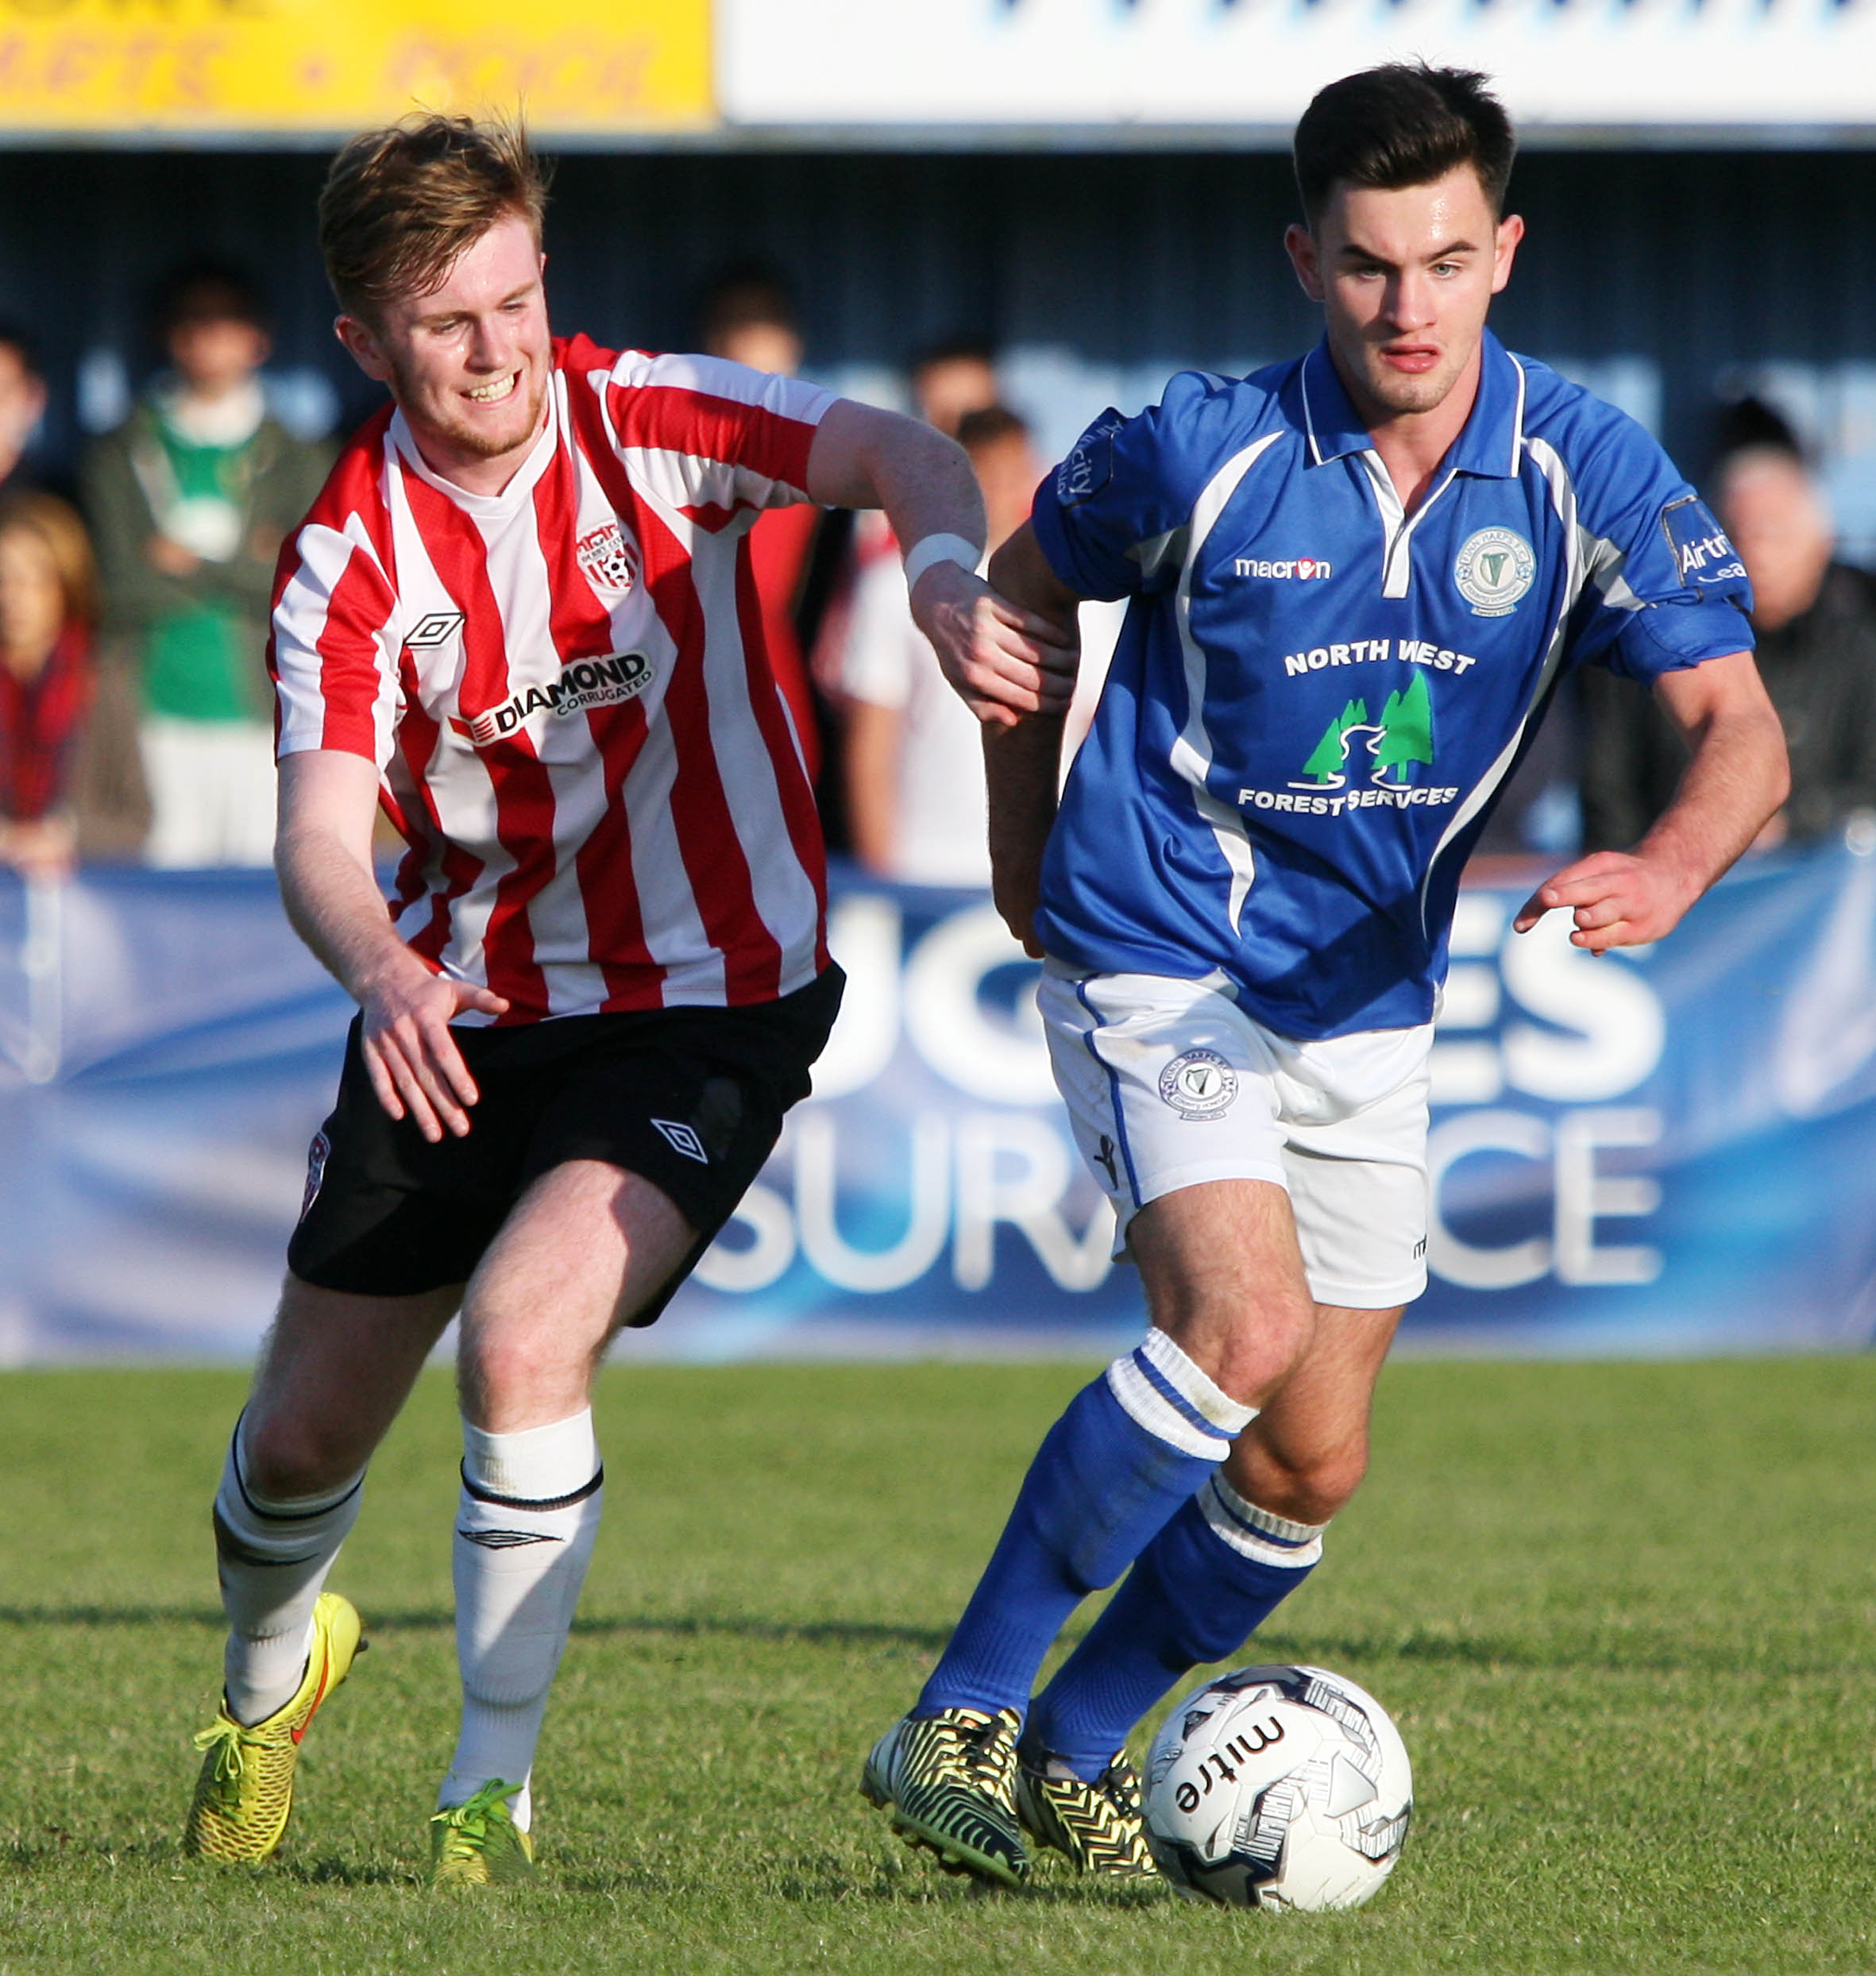 U19 Final Derry V Finn Harps 009